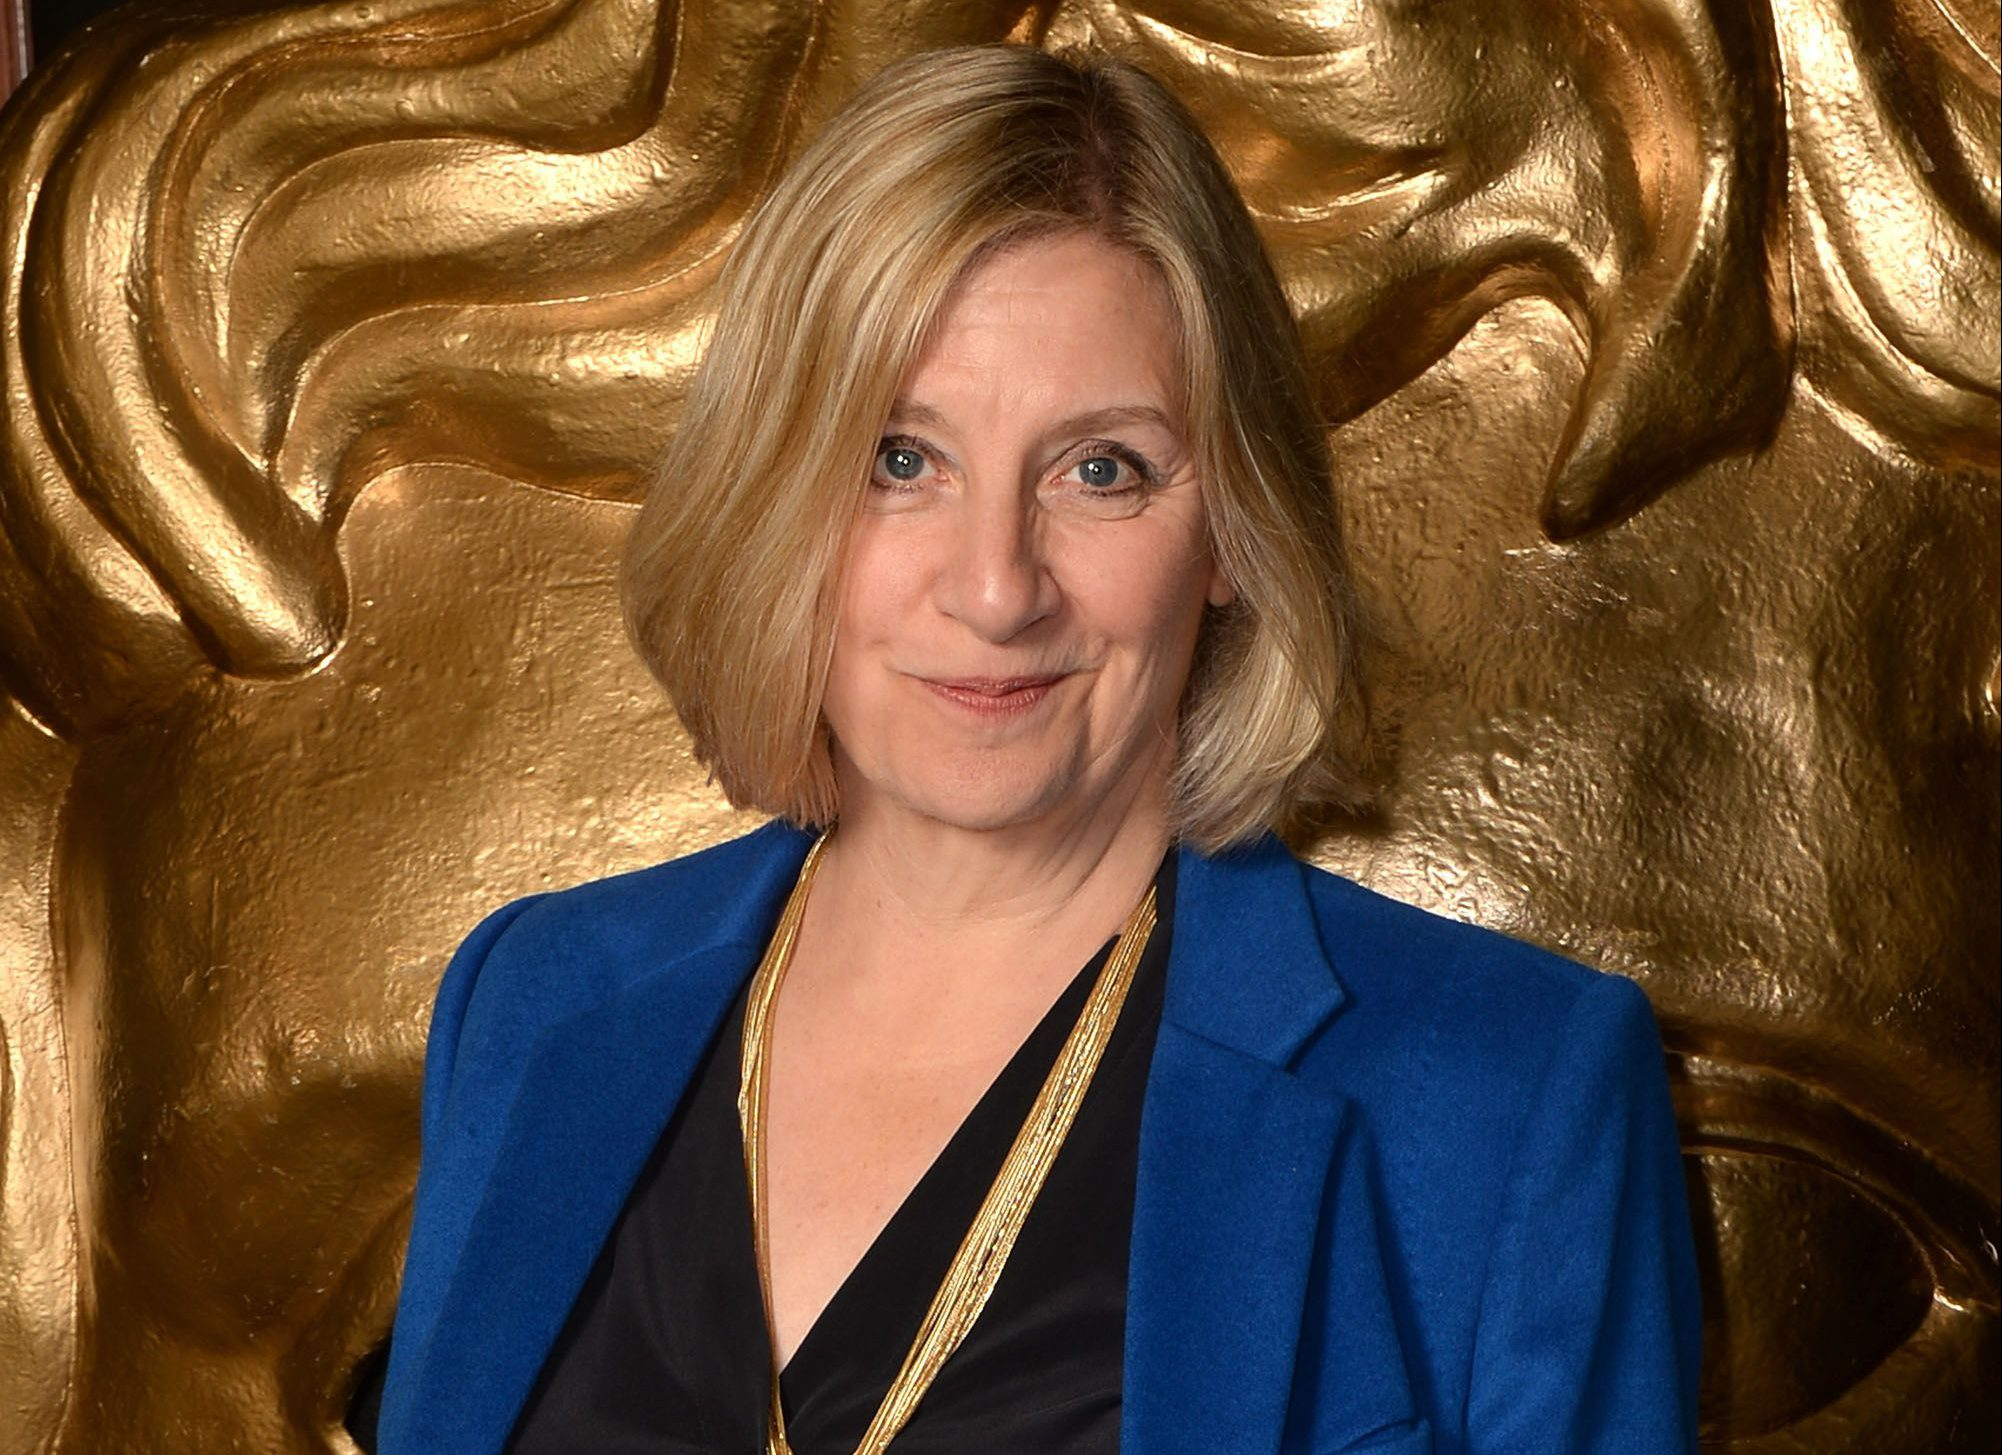 Victoria Wood is about to get a Manchester train station named after her